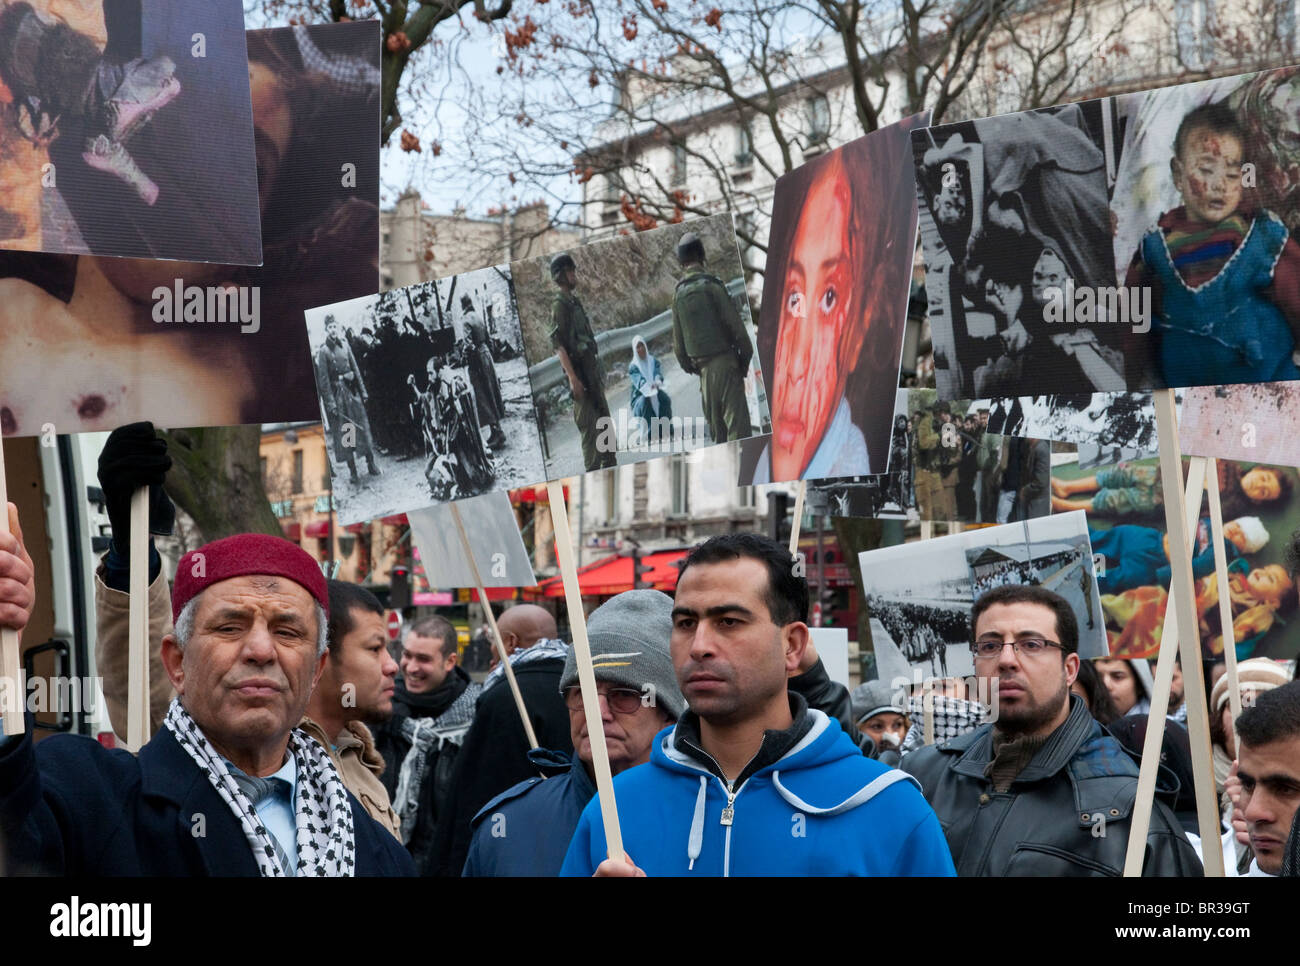 demonstration on the anniversary day of the cast lead israeli military operation in Gaza - Stock Image